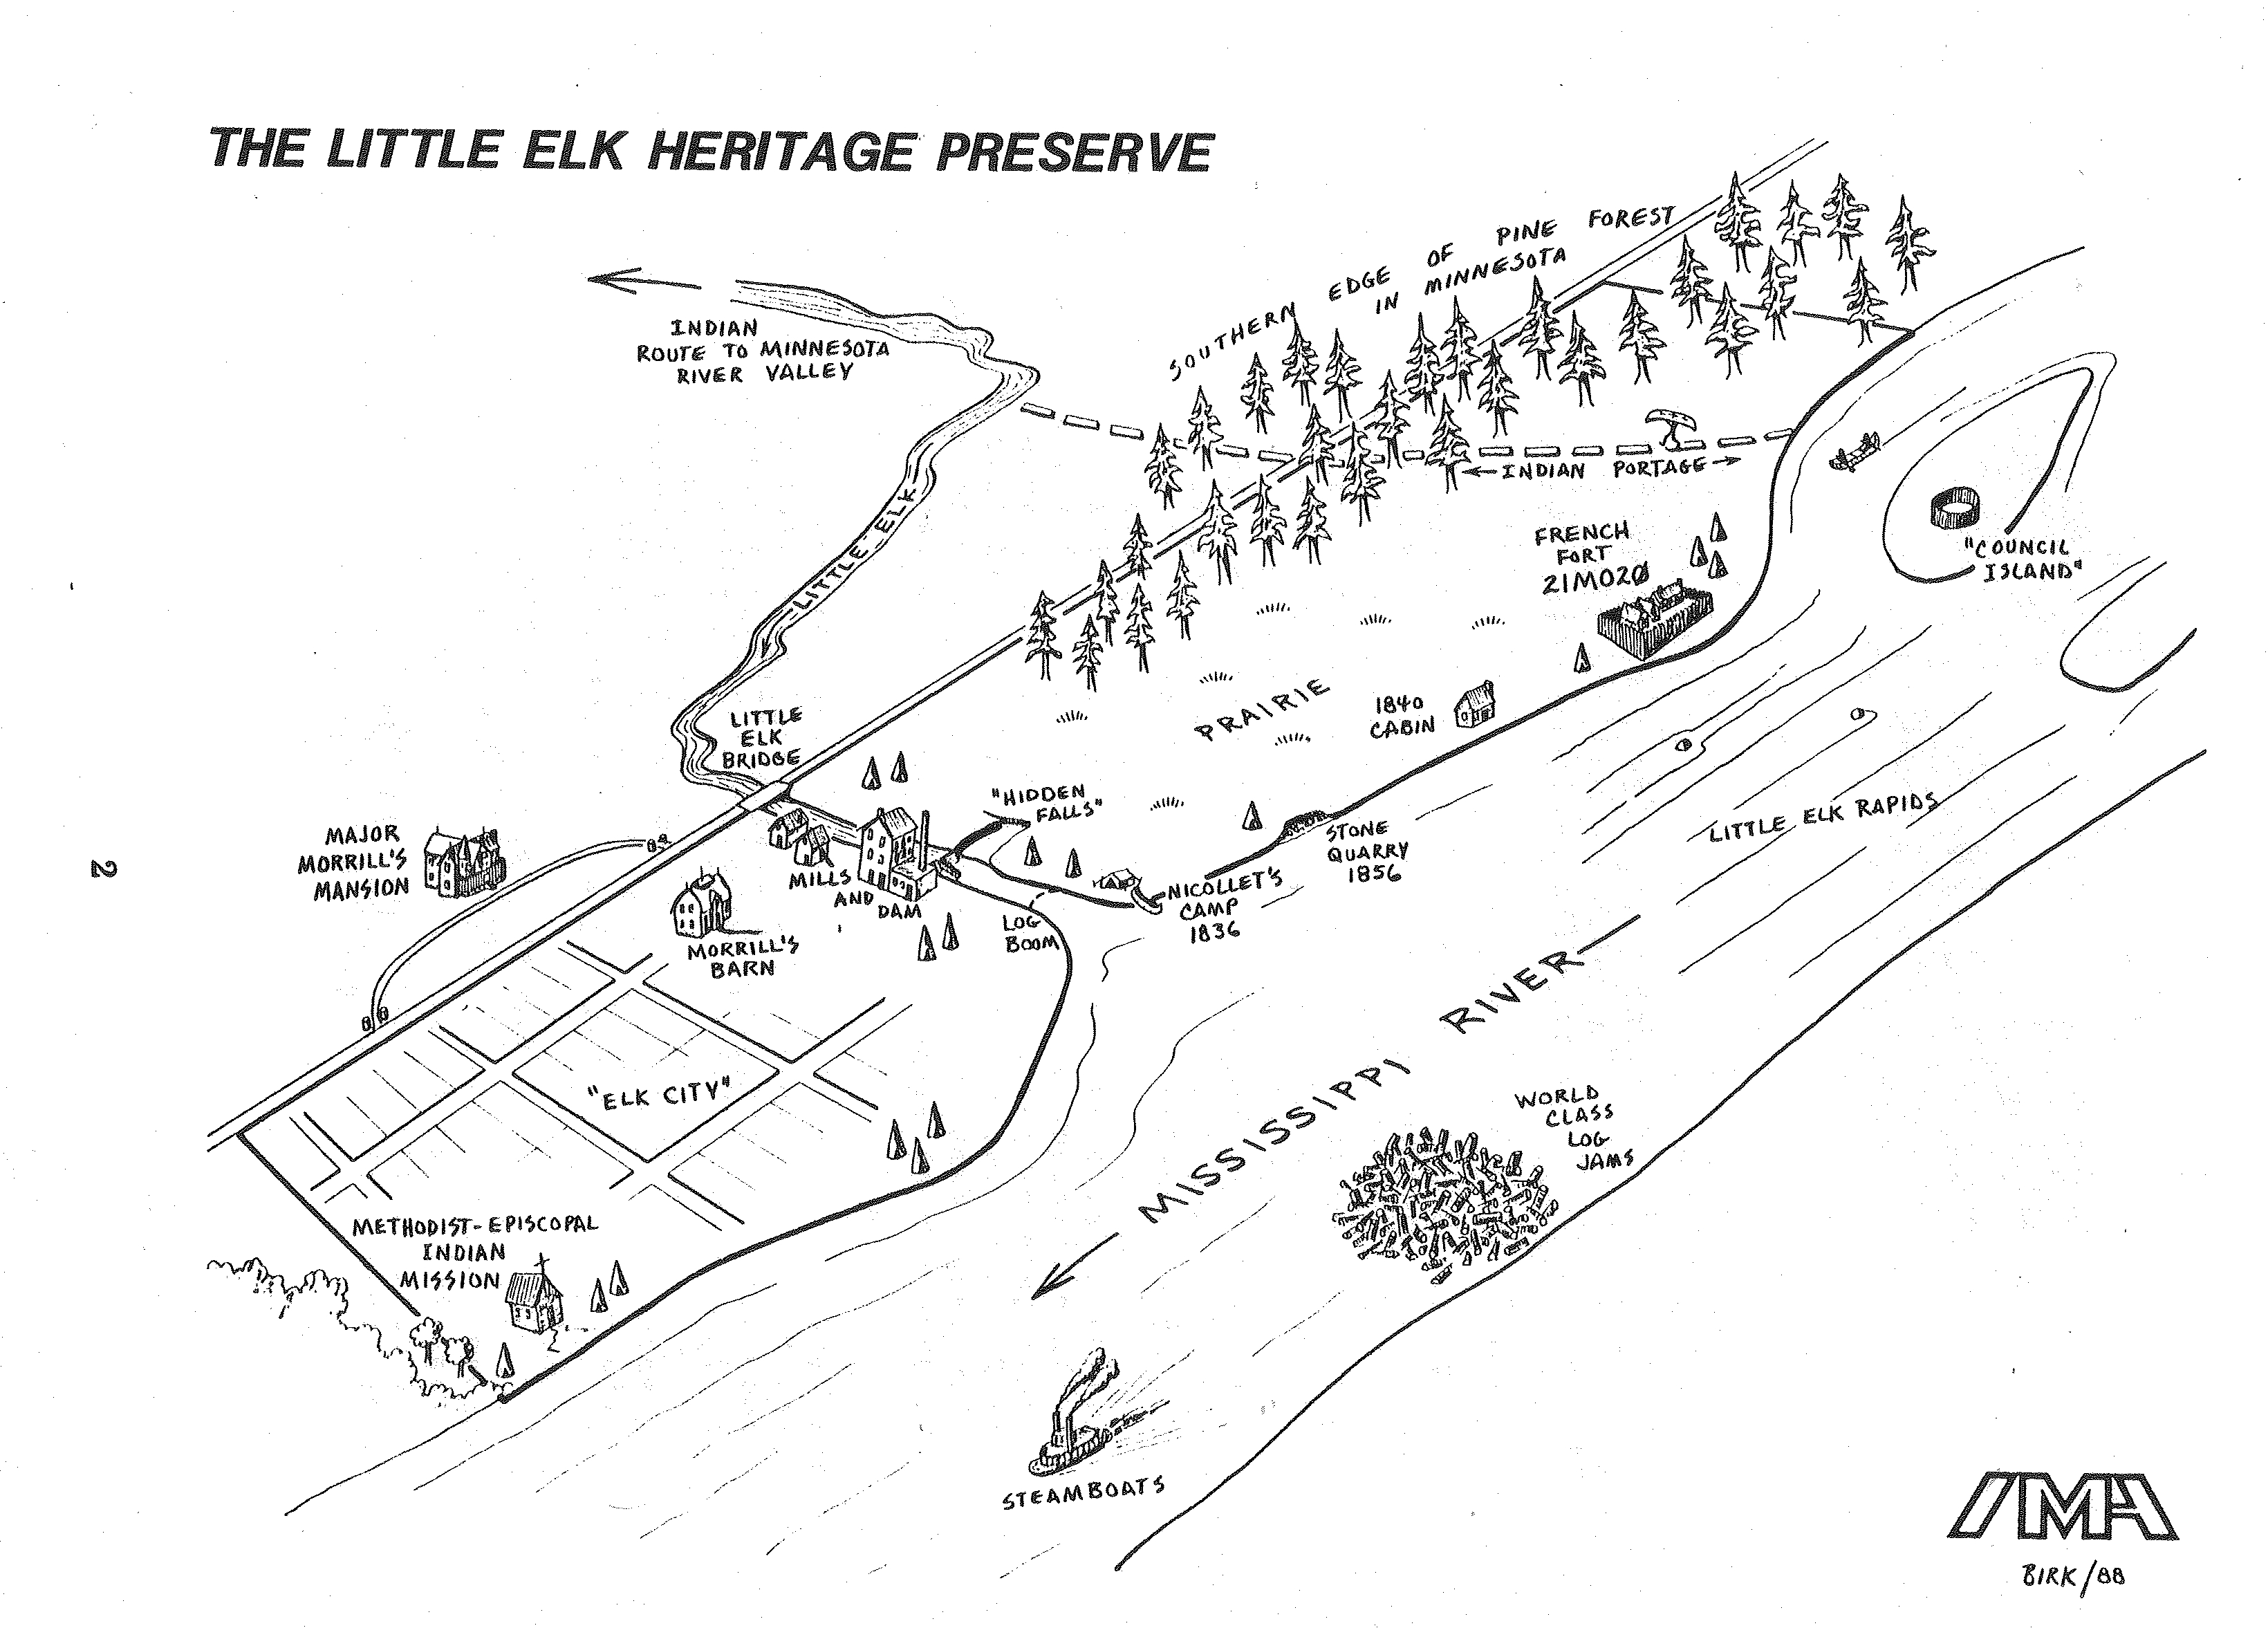 "Not only was Doug Birk a meticulous and innovative archaeologist, he created fascinating maps of sites and drawings of artifacts. Here is his drawing of the Little Elk Heritage Preserve, which is from ""Life, Land, Water, and Time: A Resource Book for the Little Elk Heritage Preserve,"" published by The Institute for Minnesota Archaeology in 1989. The quote regarding Doug's vision for LEHP that appears in the article below is from this publication, as well."